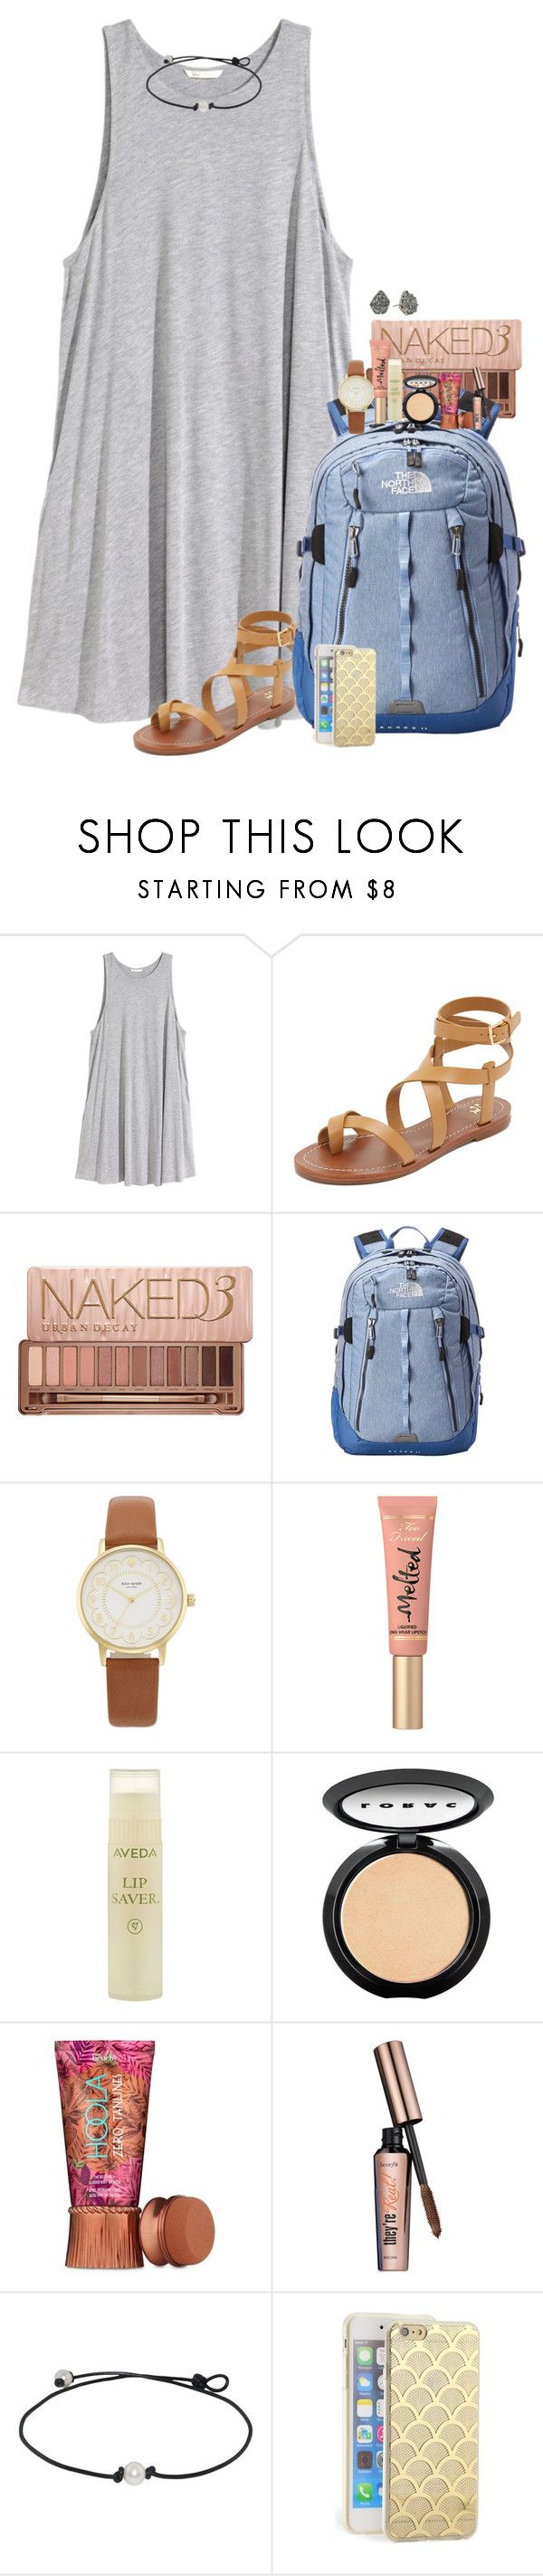 """Last Day of School! Contest Entry RTD"" by penguinfan911 ❤ liked on Polyvore featuring H&M, Tory Burch, Urban Decay, The North Face, Kate Spade, Too Faced Cosmetics, Aveda, LORAC, Benefit and Sonix"